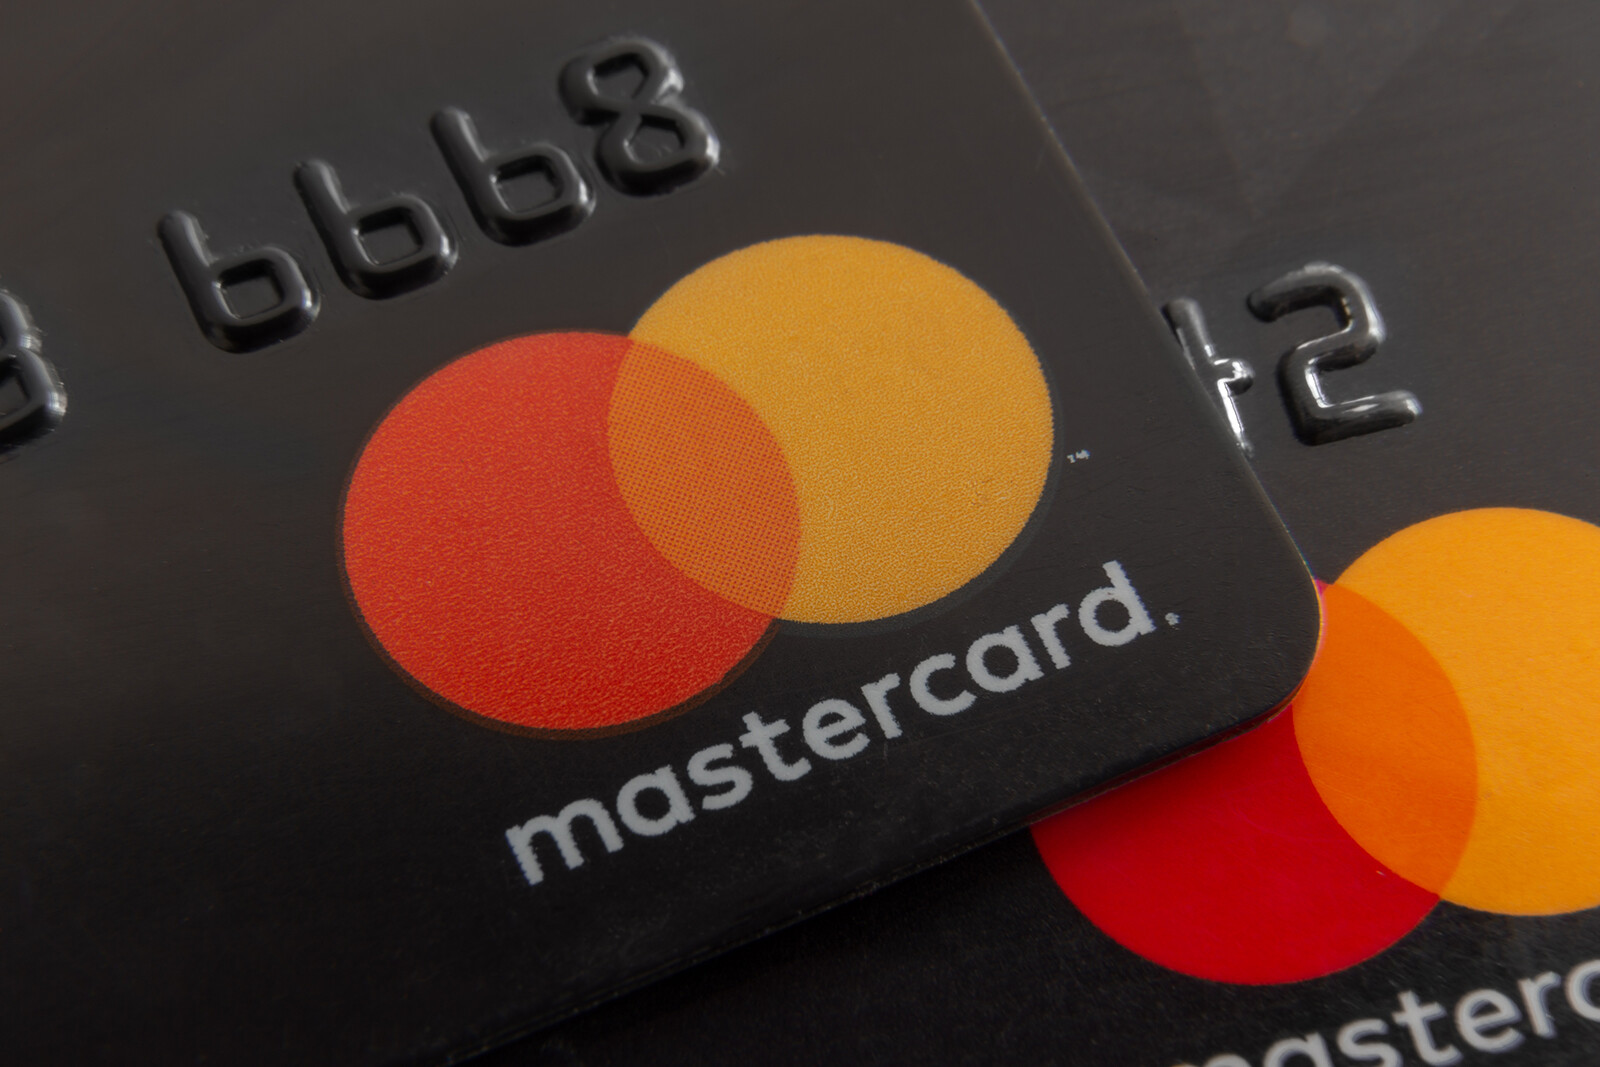 Mastercard has been banned from issuing new cards in India